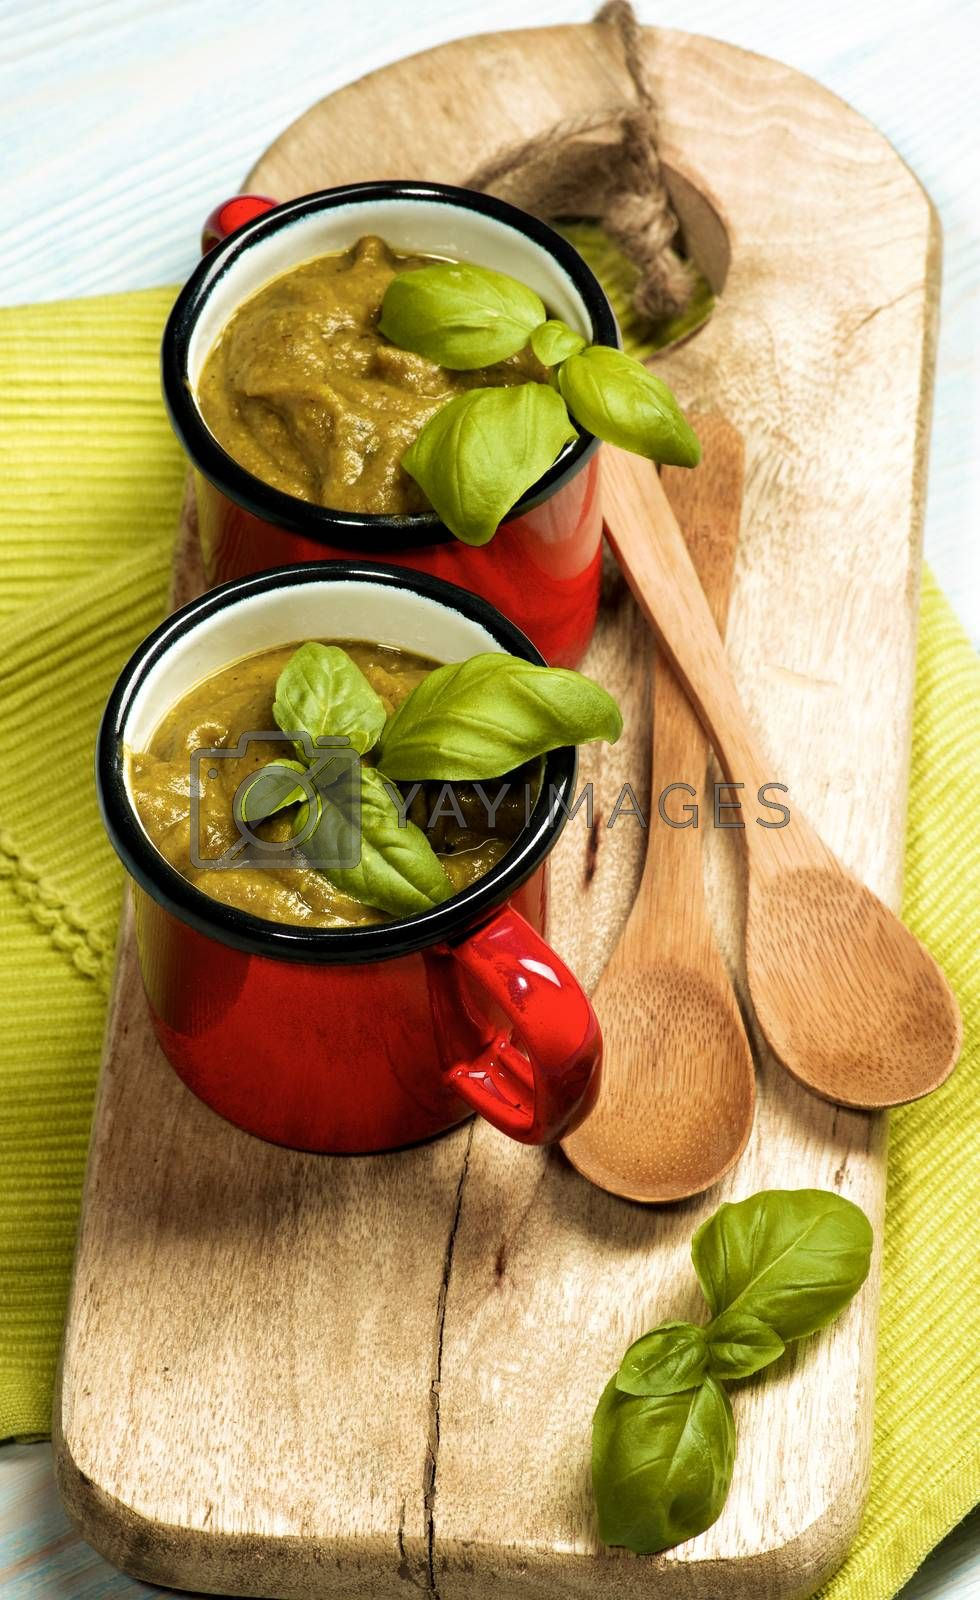 Delicious Vegan Cream Soup in Soup Cups with Wooden Spoons with Basil on Serving Board closeup on Wooden background